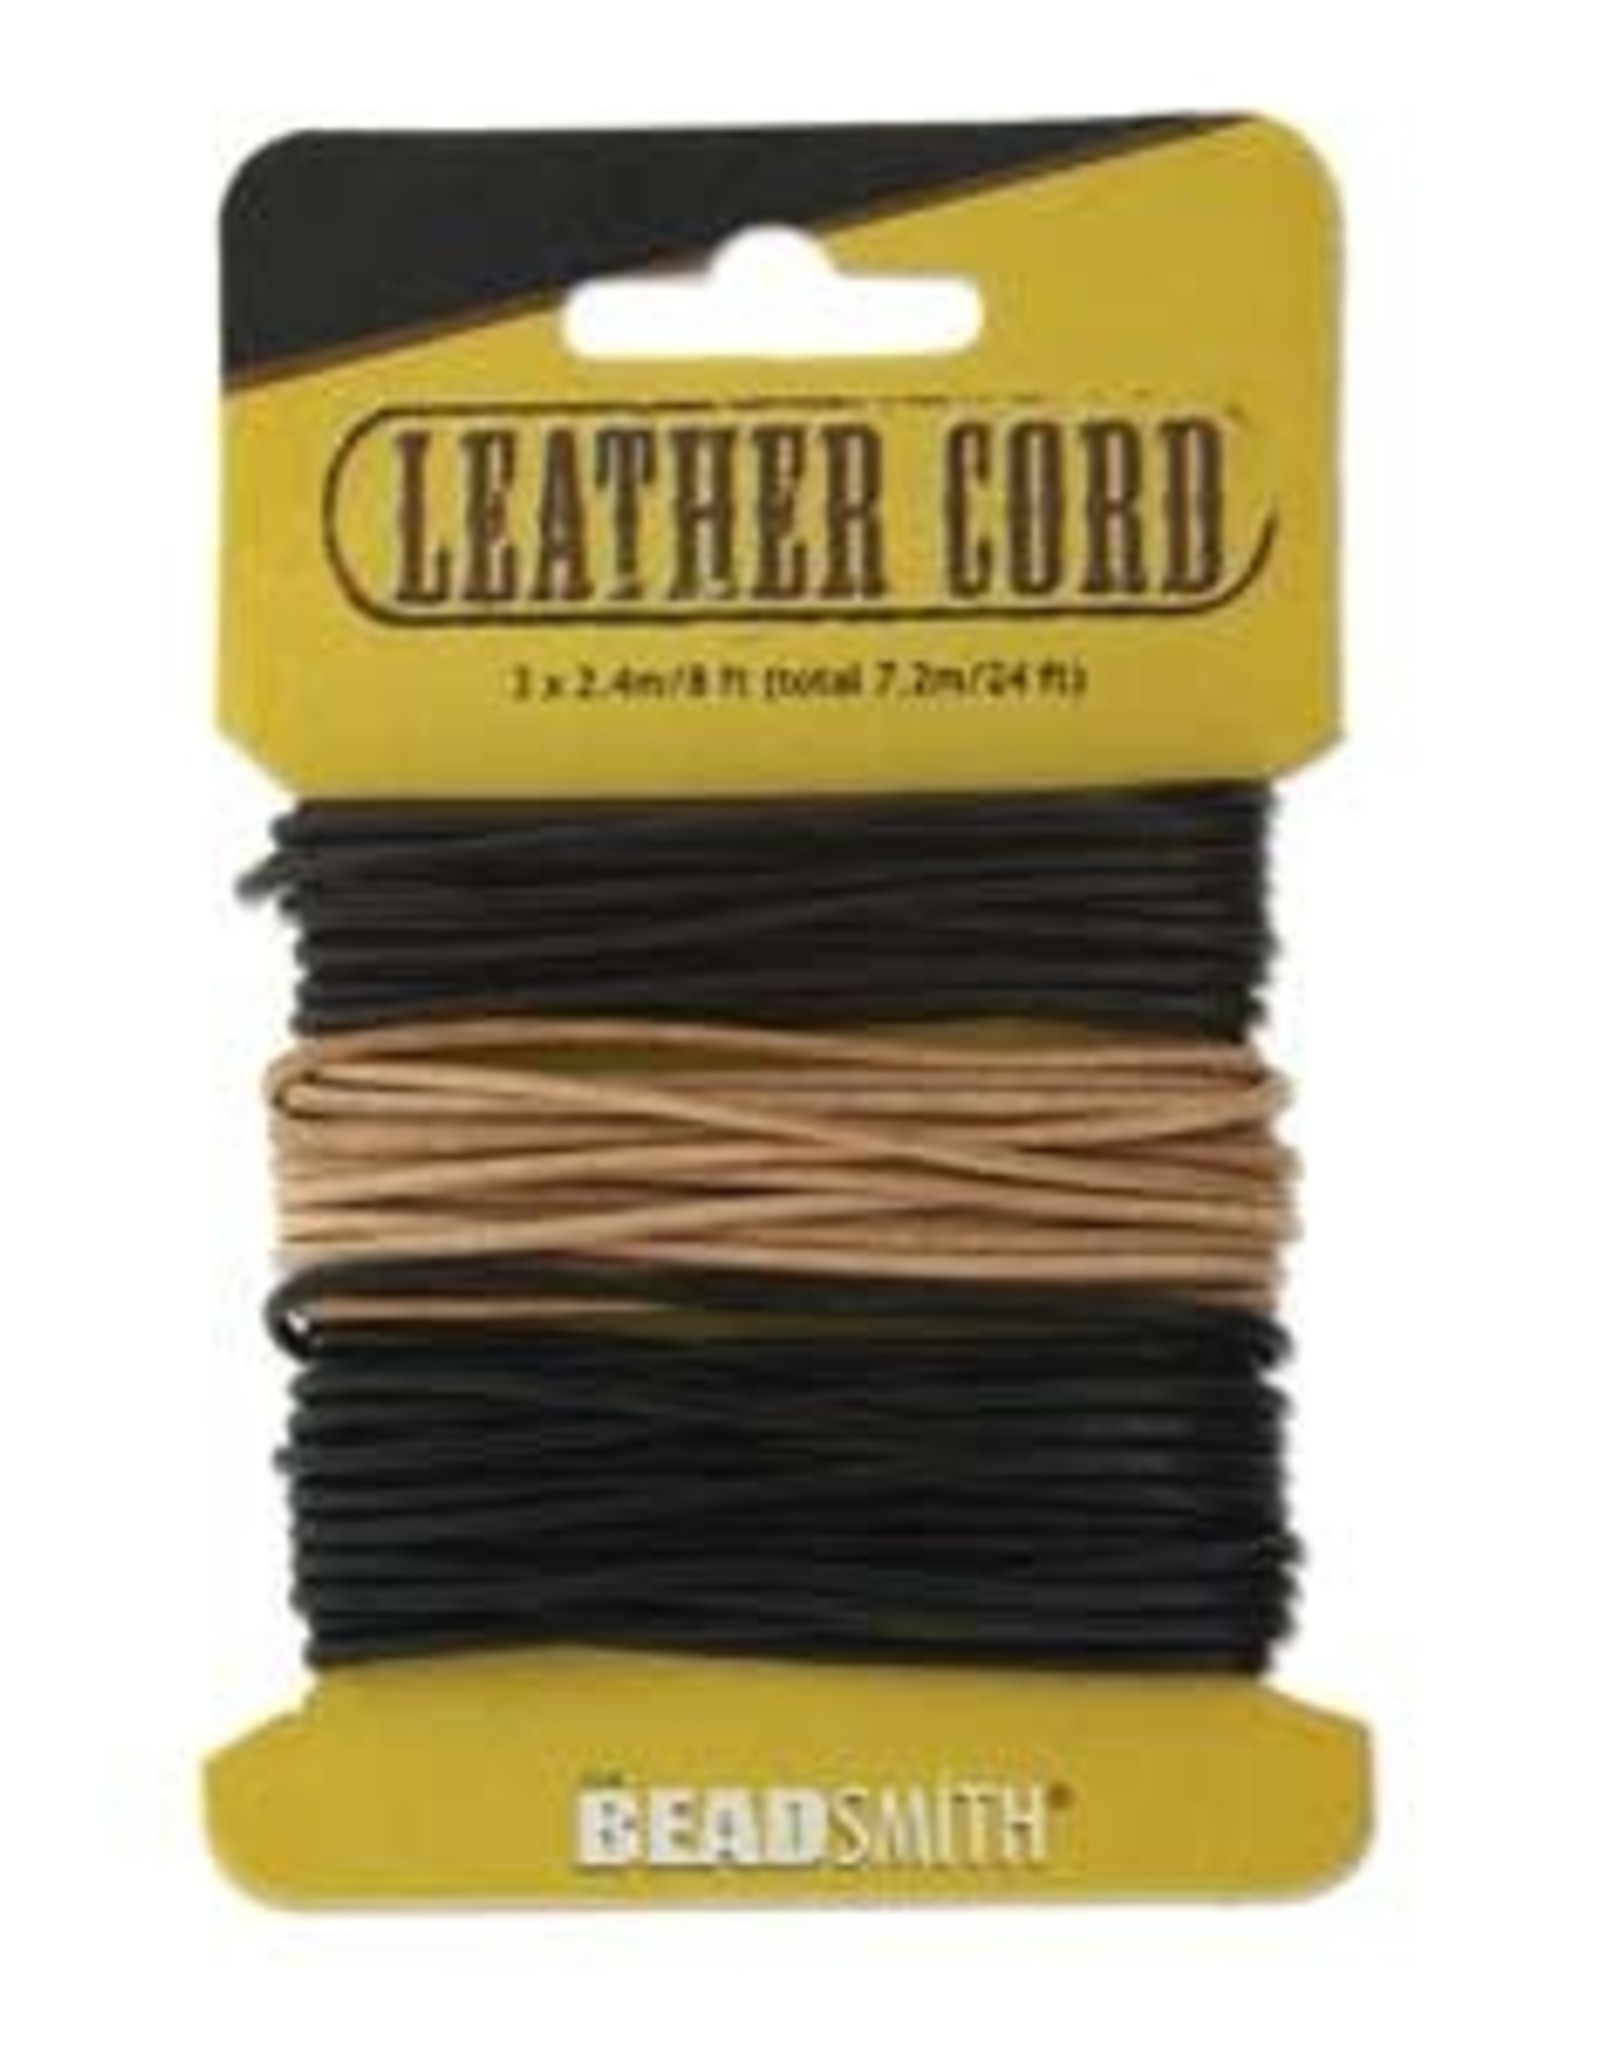 1.5 Leather - Tan, Brn & Blk 24ft on Card